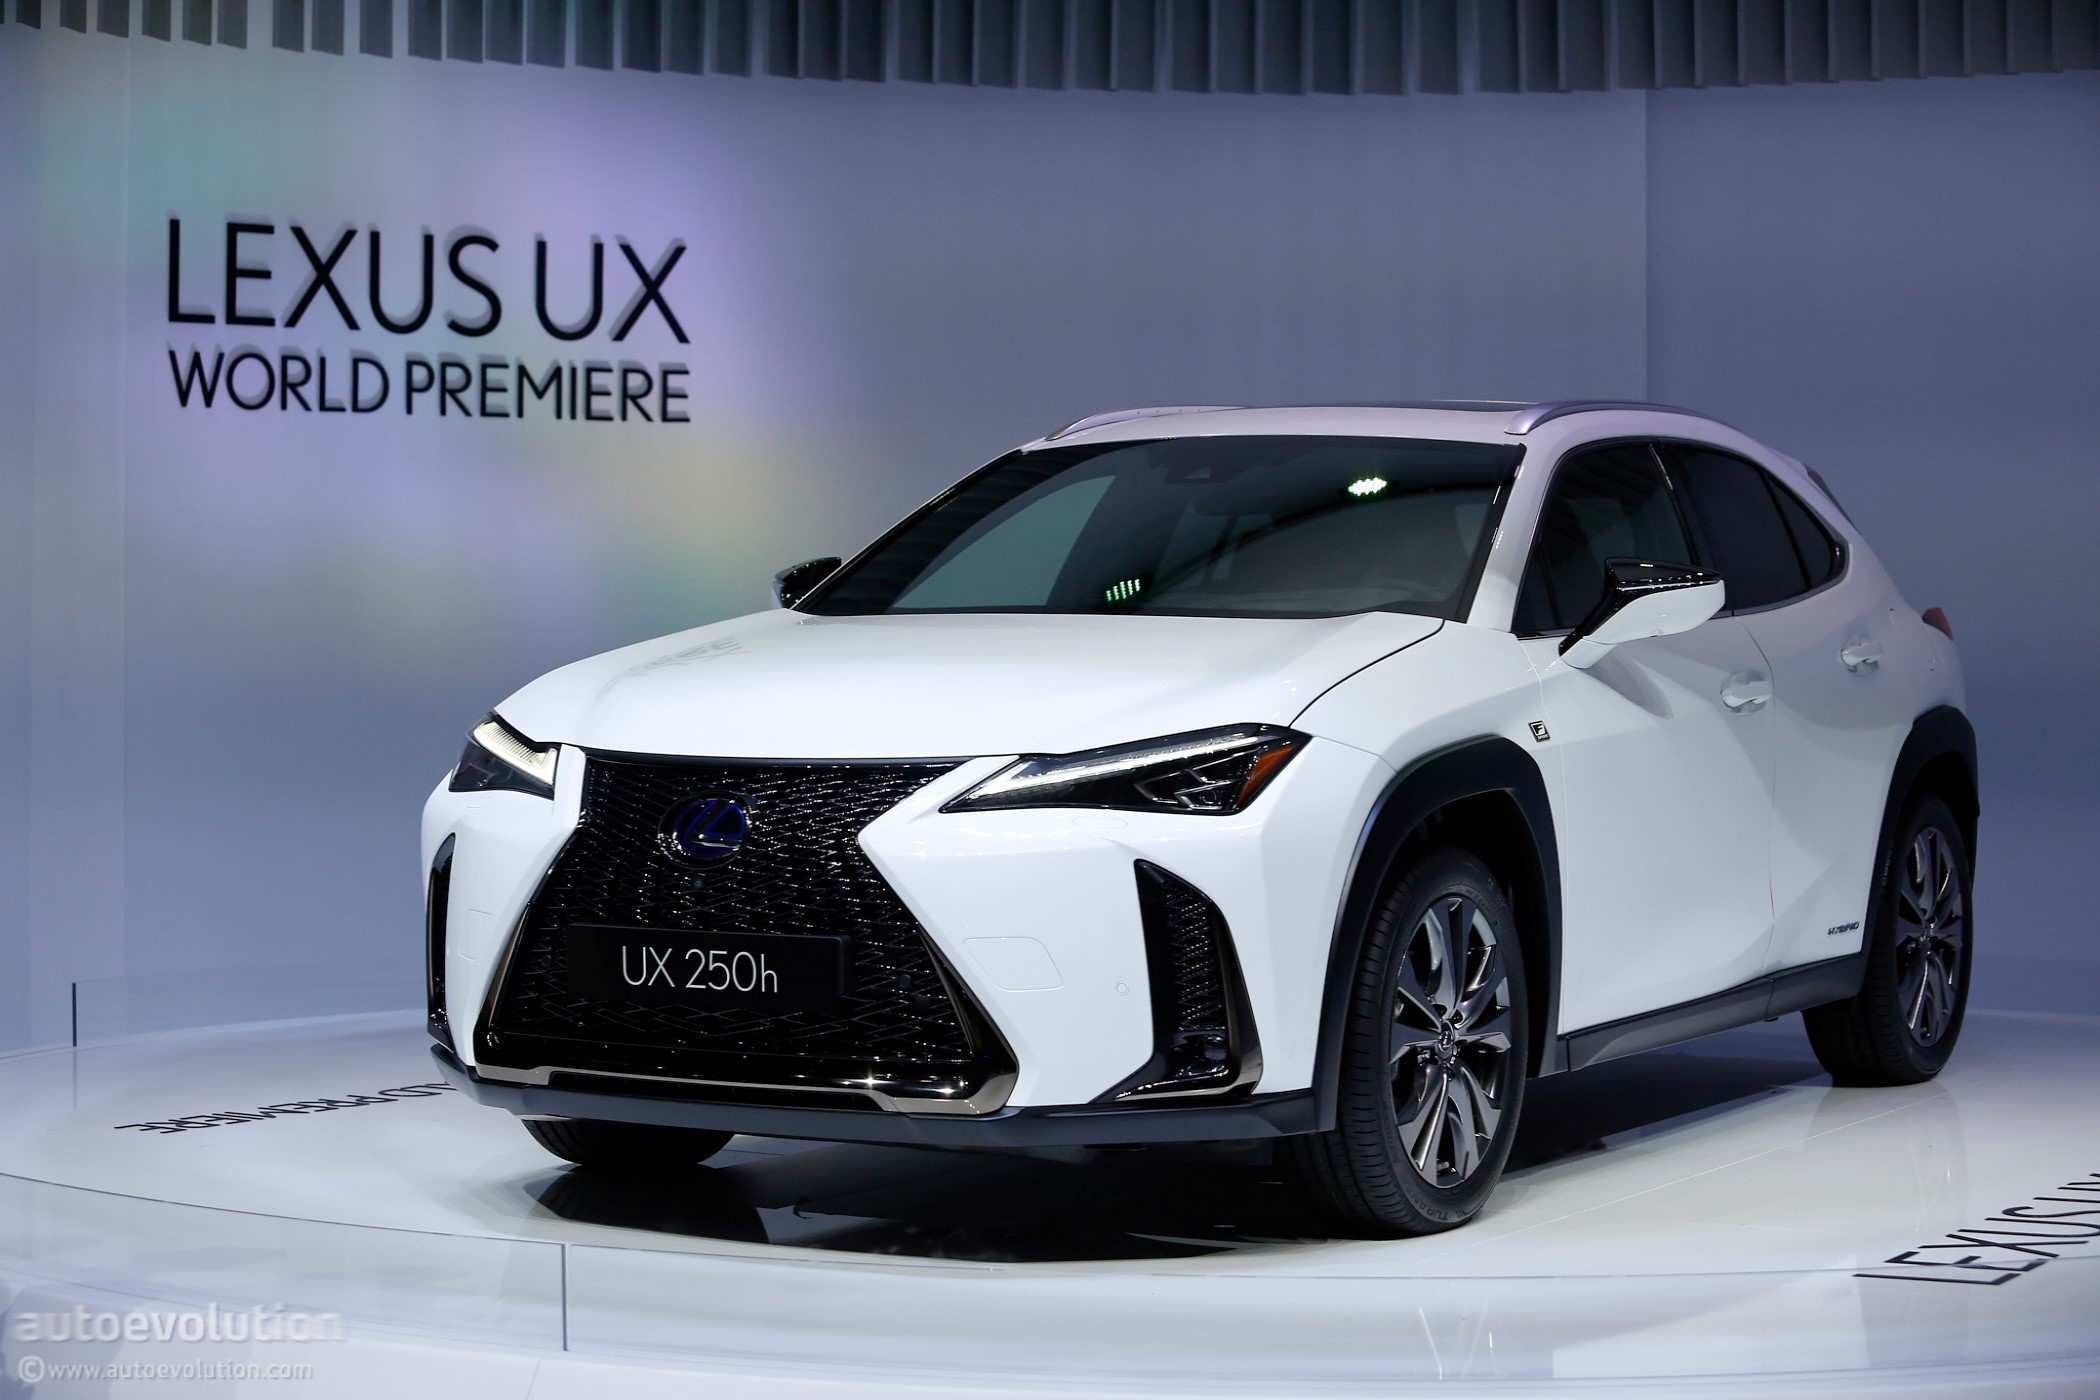 54 Best Review Pictures Of 2020 Lexus Ratings with Pictures Of 2020 Lexus